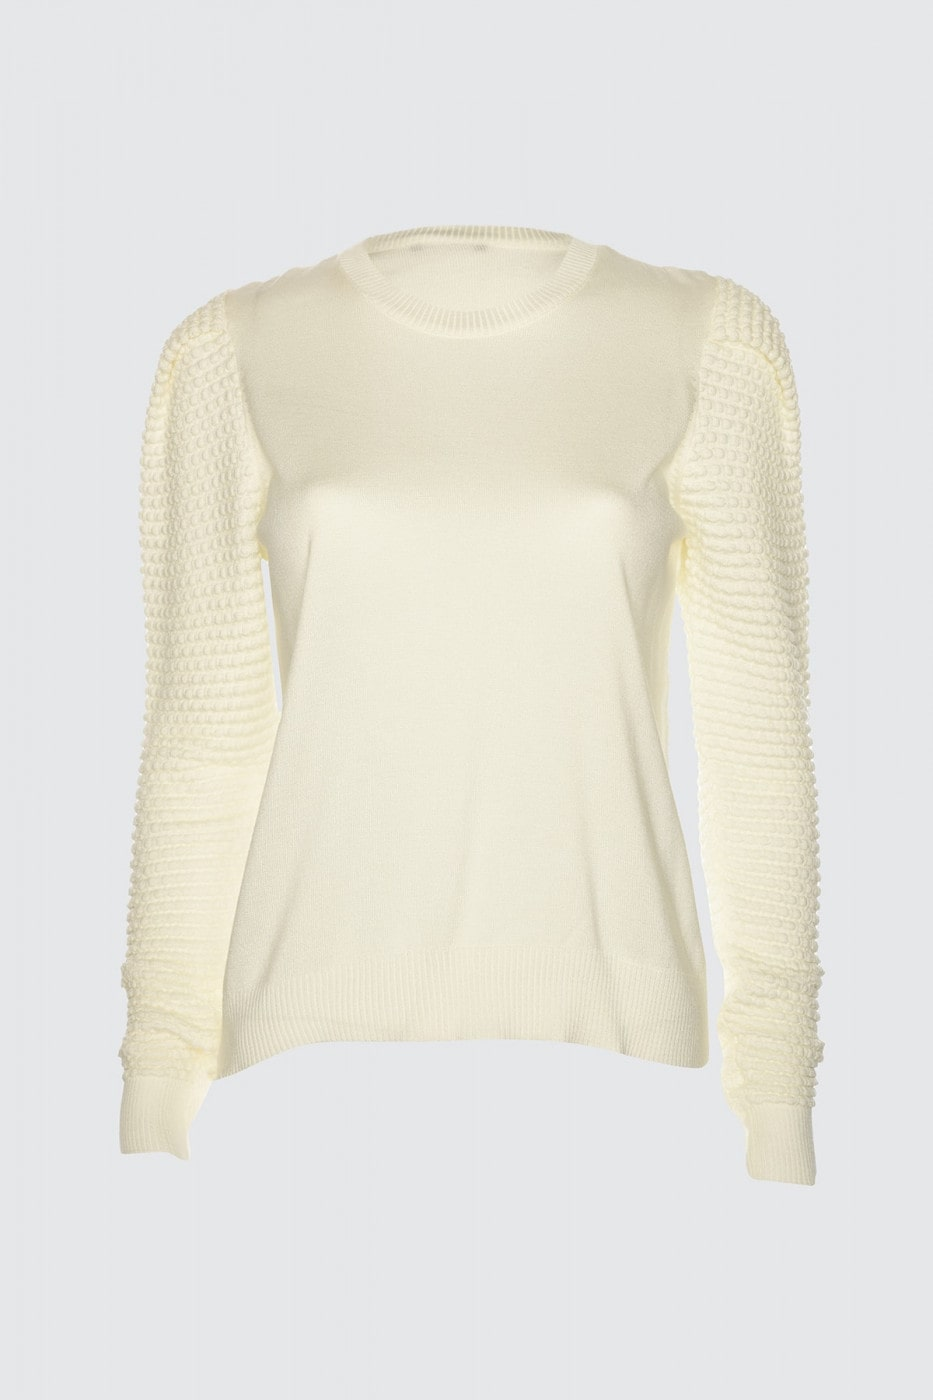 Trendyol Ekru Arm Knitted Detailed Knitwear Sweater